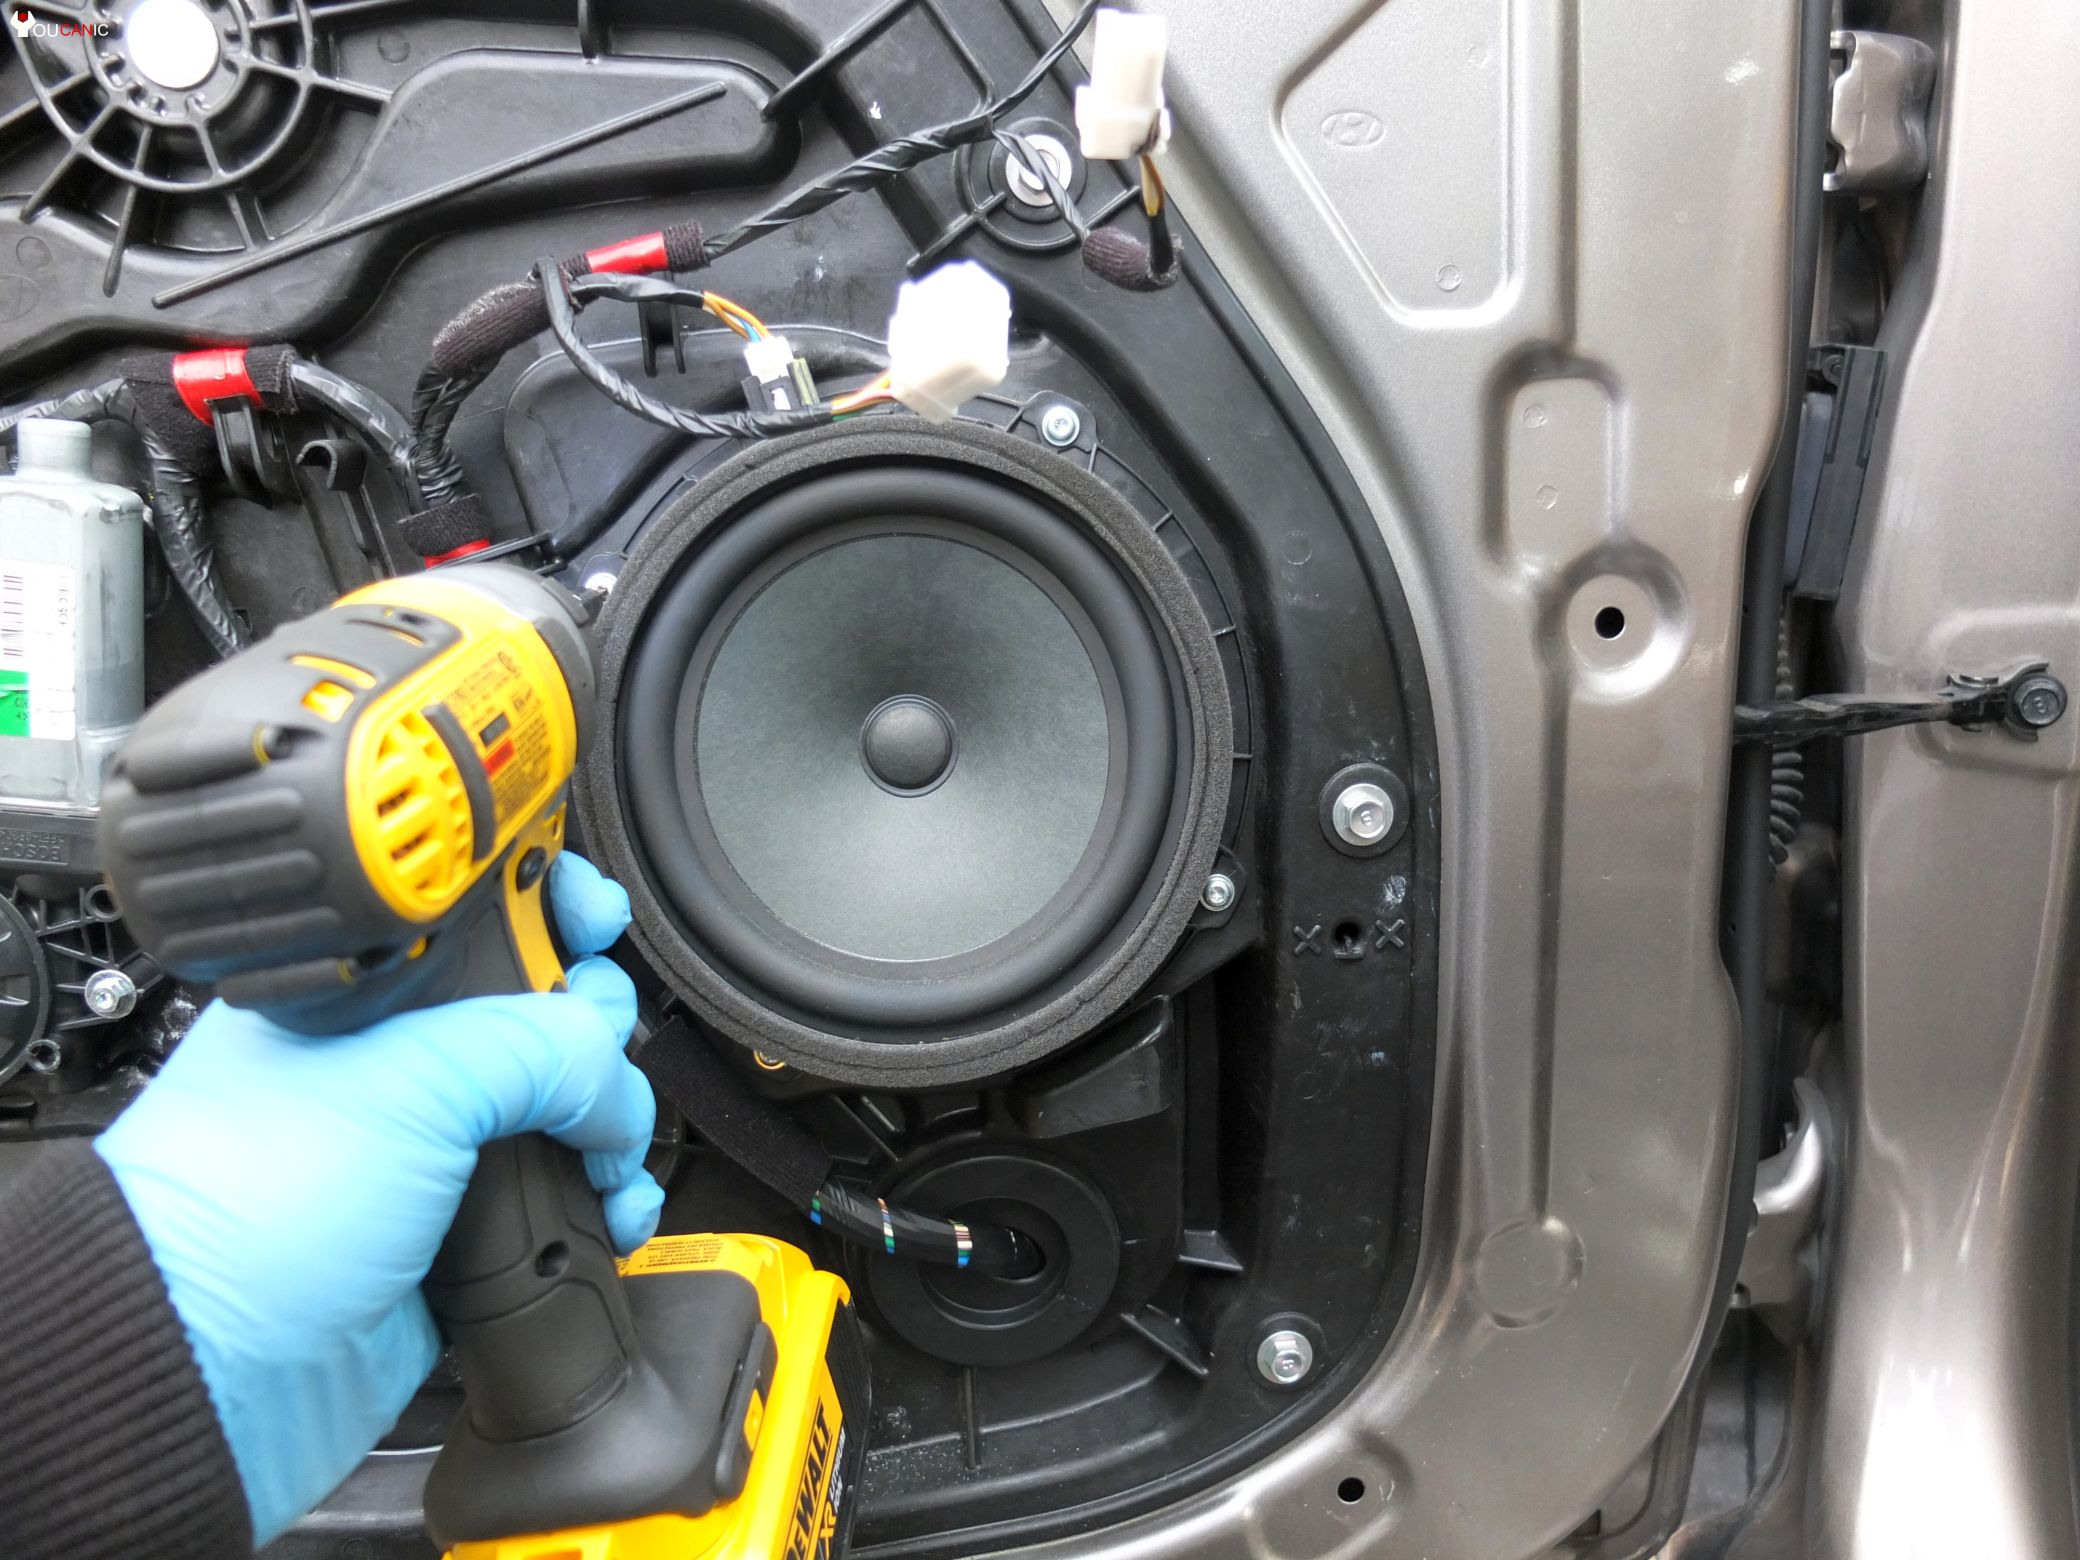 Learn how to replace or upgrade Hyundai Elantra 2011-2016 Door Speakers Yourself. & How to Replace Upgrade Hyundai Door Speakers